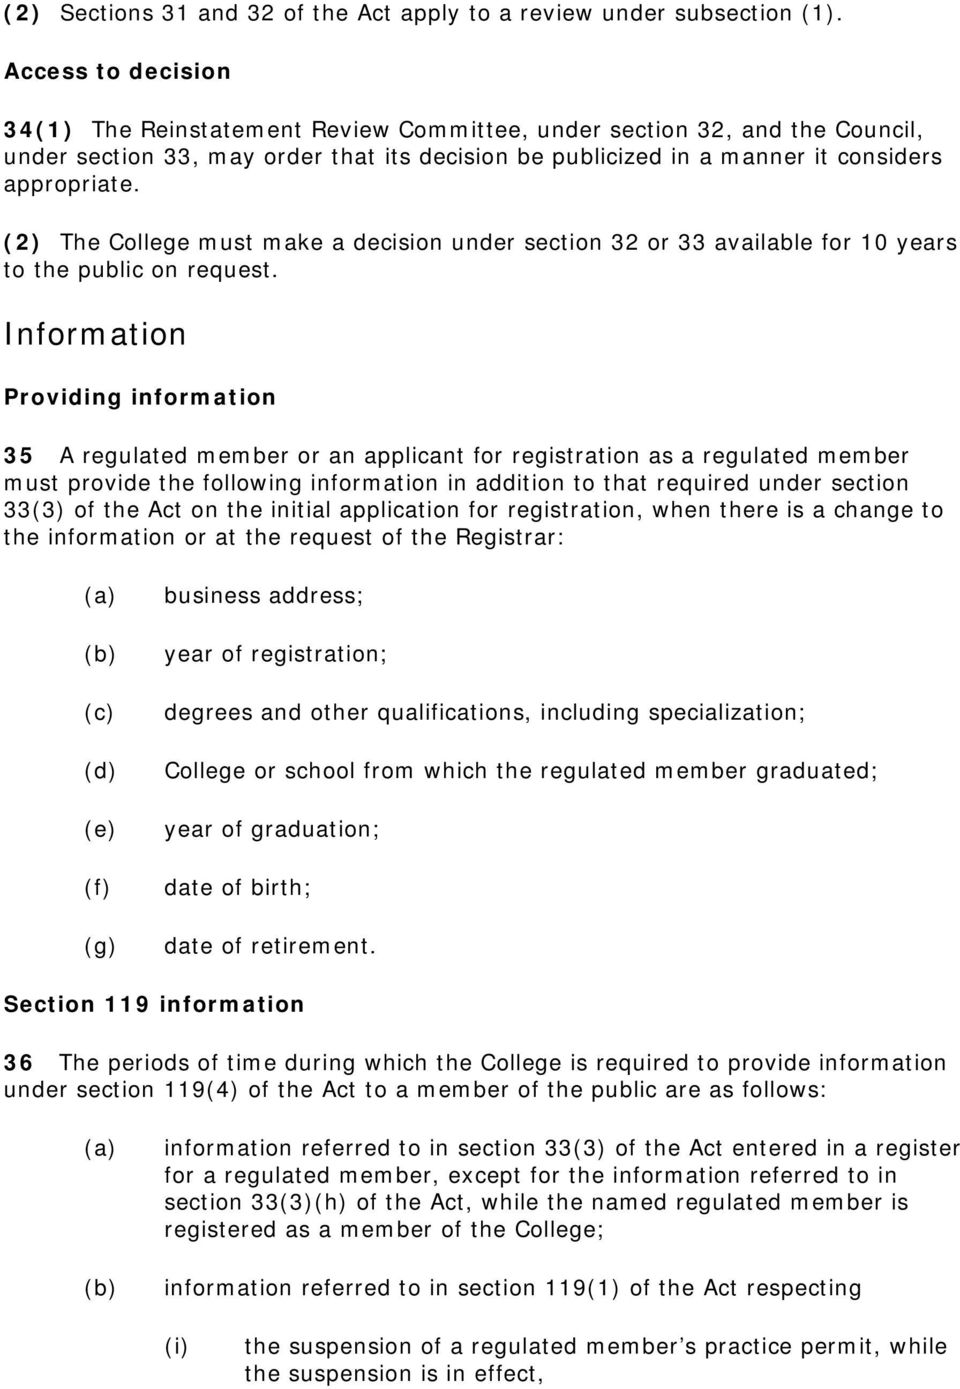 (2) The College must make a decision under section 32 or 33 available for 10 years to the public on request.